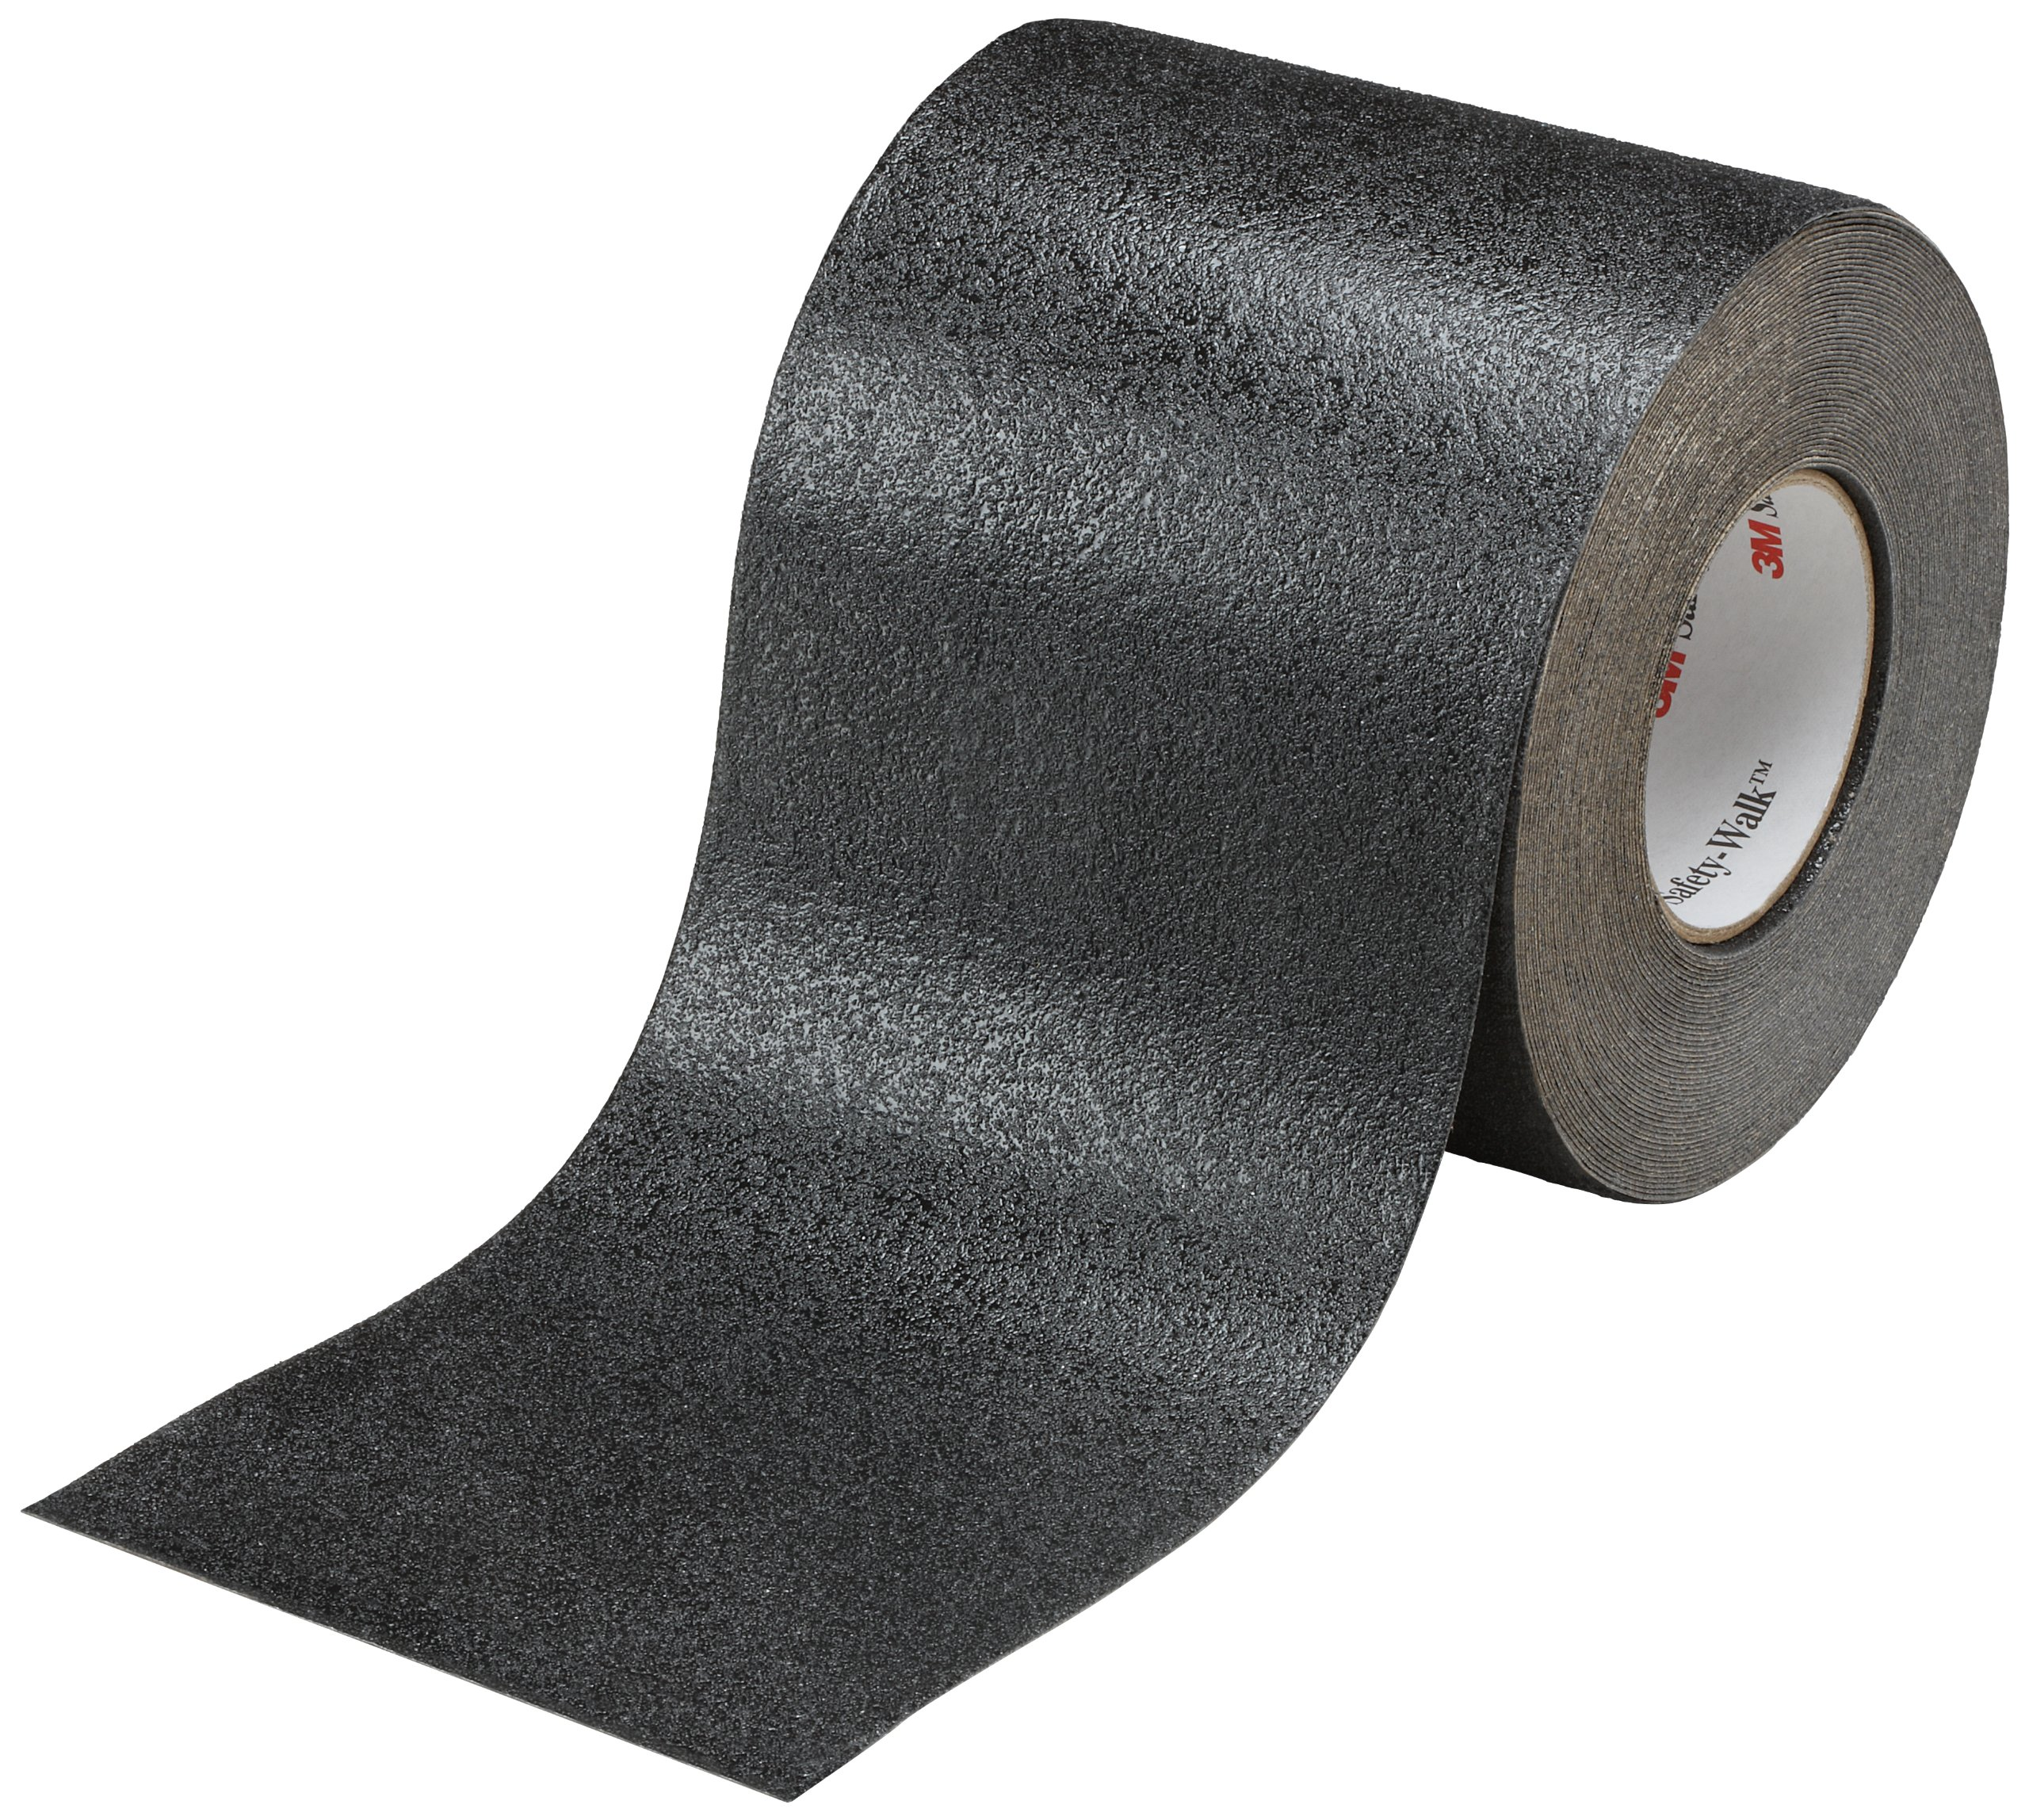 3M Safety-Walk Slip-Resistant Conformable Tapes and Treads 510, Black, 4'' Width, 60' Length (Pack of 1 Roll)